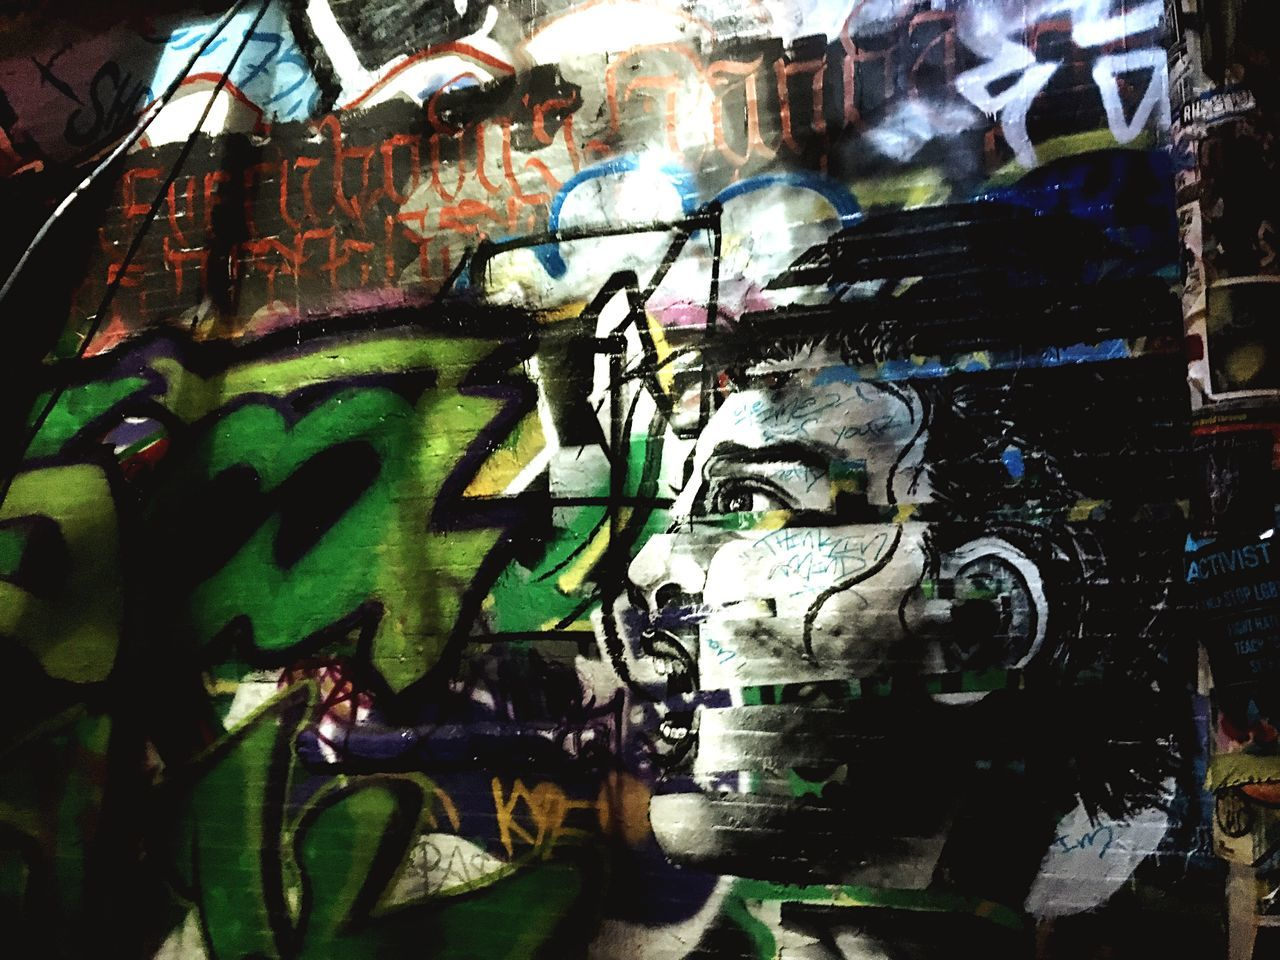 Graffiti Art And Craft Creativity Multi Colored No People Backgrounds Full Frame Close-up Architecture Outdoors Day Alleyway